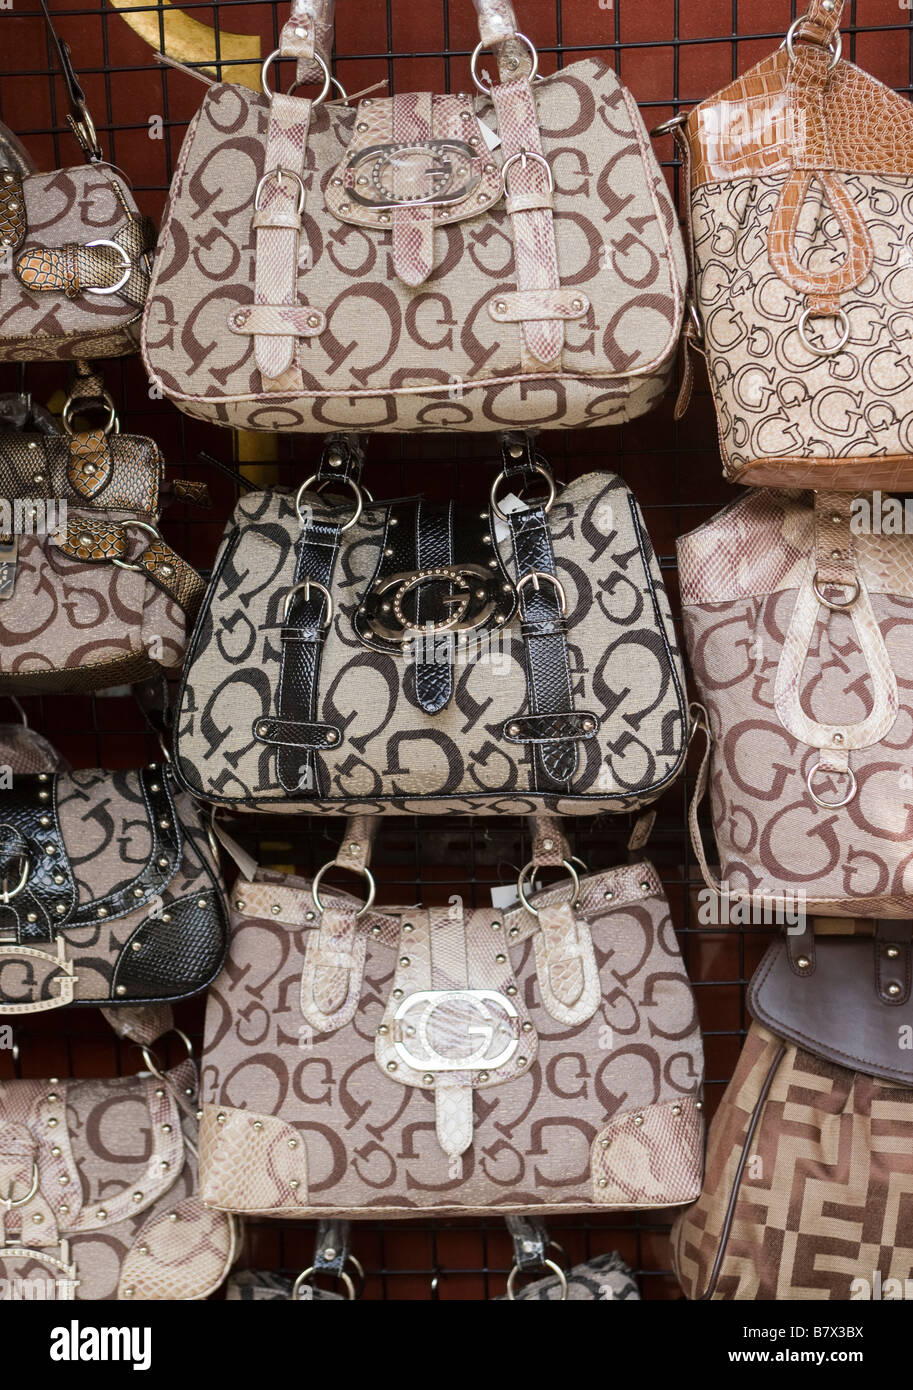 Best fake mulberry bags bangkok